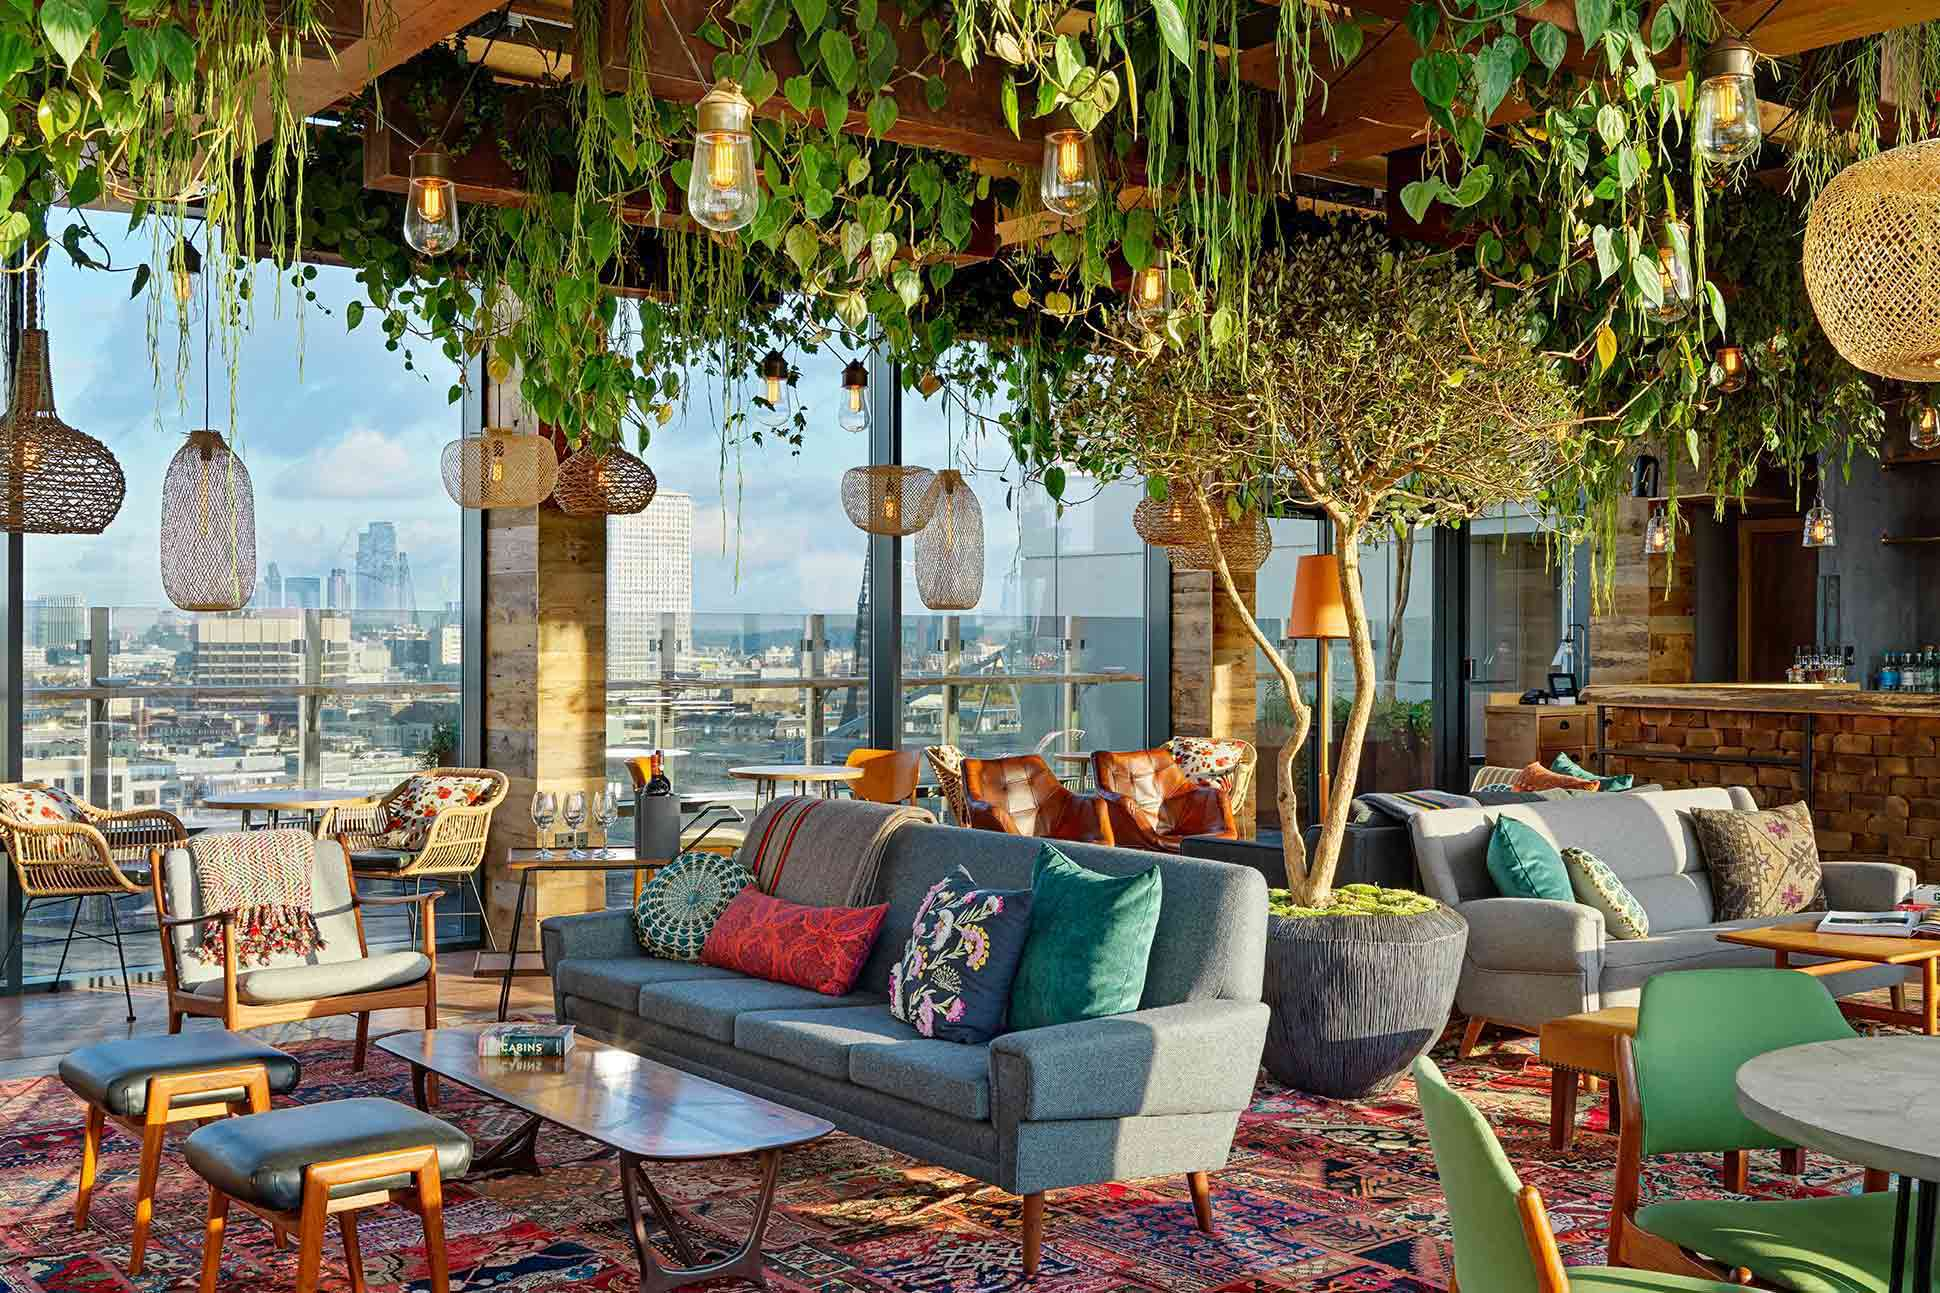 Treehouse London <br> London, United Kingdom